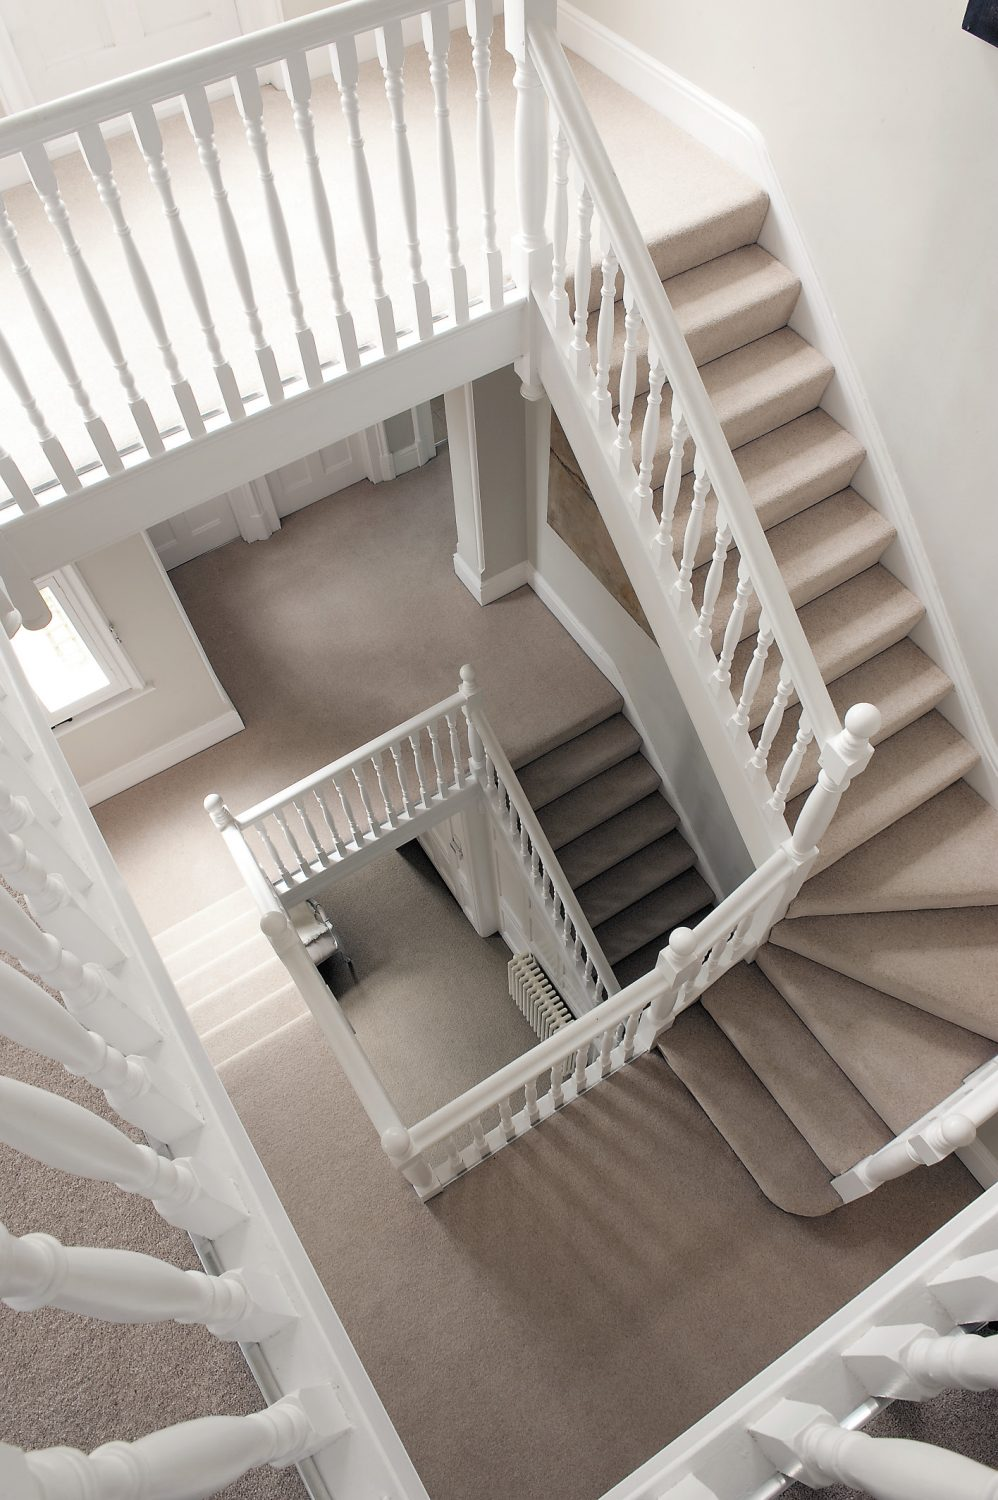 The stunning staircase turns and climbs up three stories round the huge central well.